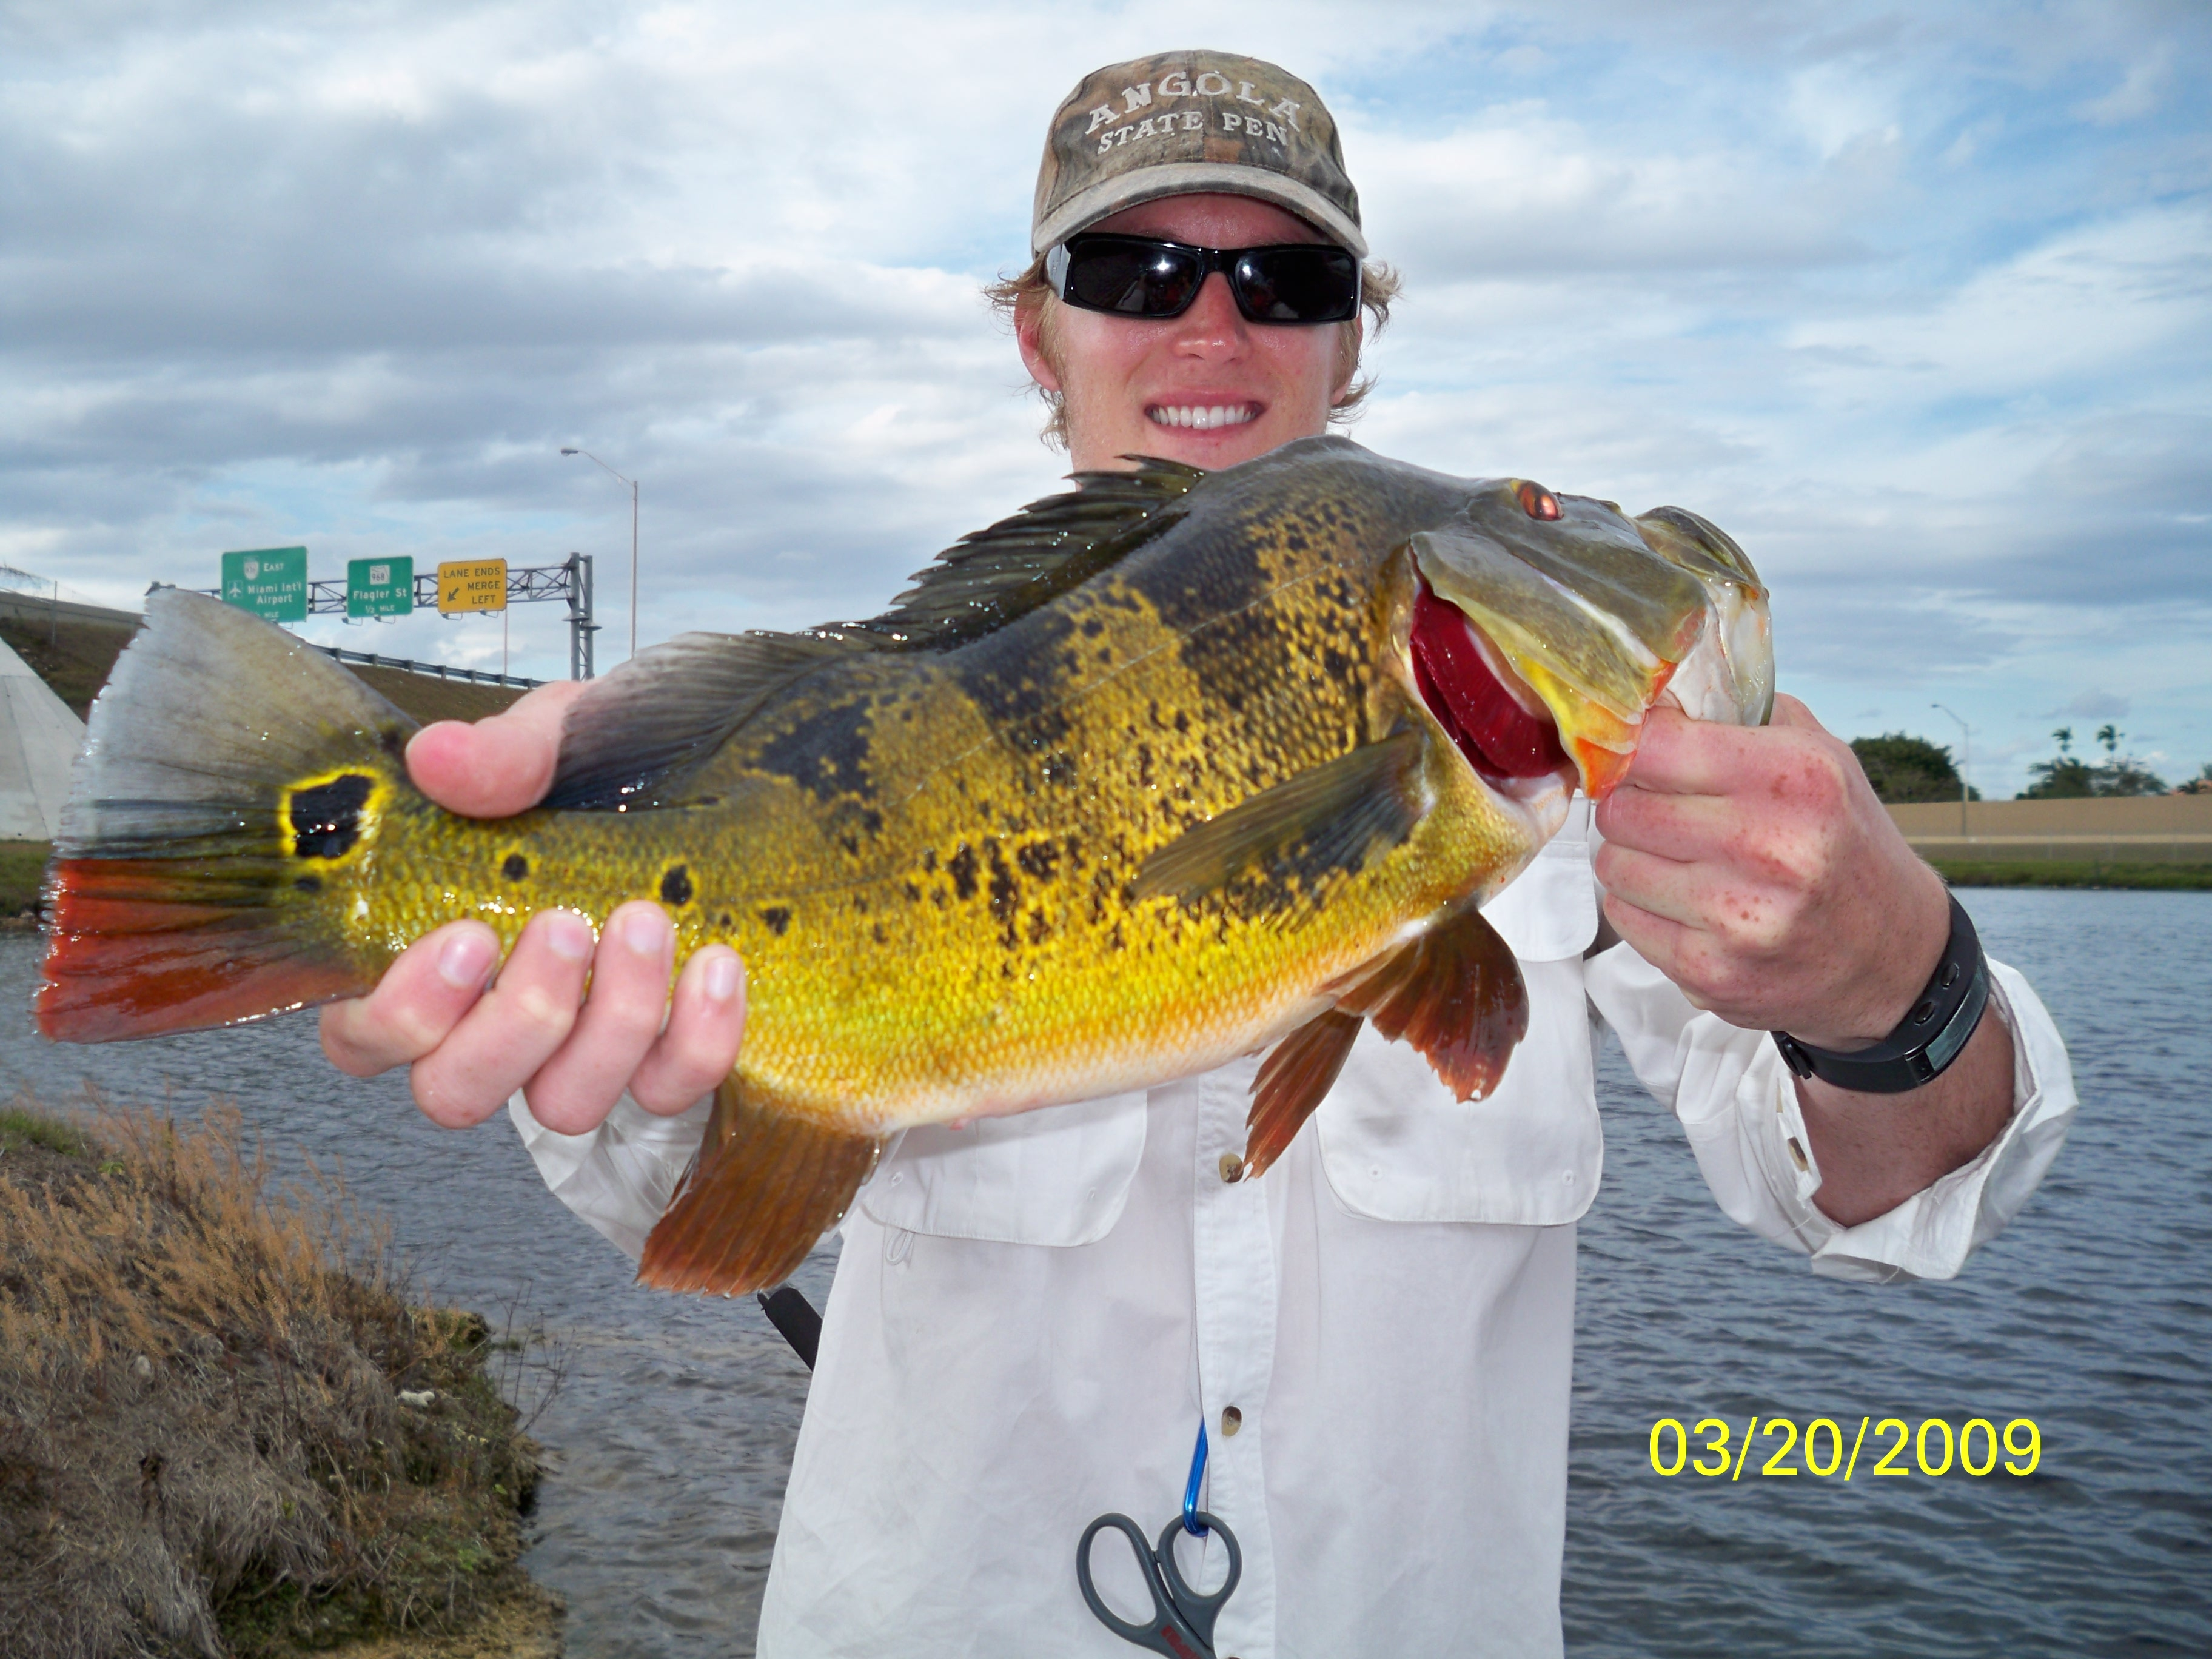 south florida bass fishing reports | blog » miami peacock bass, Fishing Reels